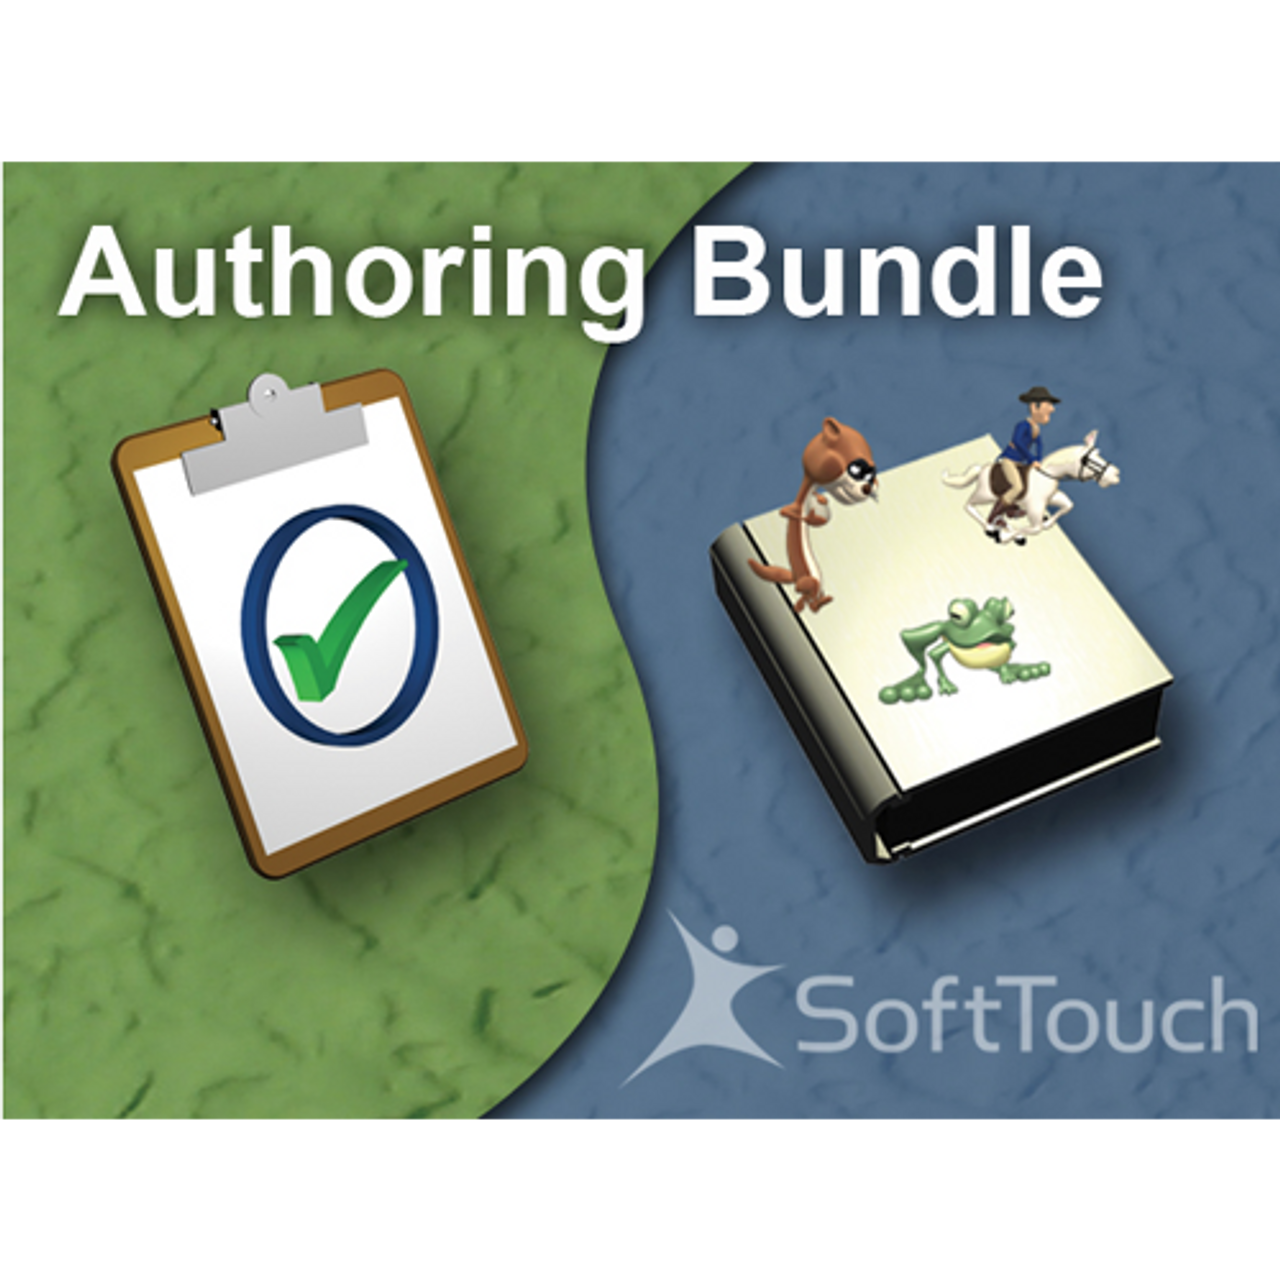 Authoring Bundle